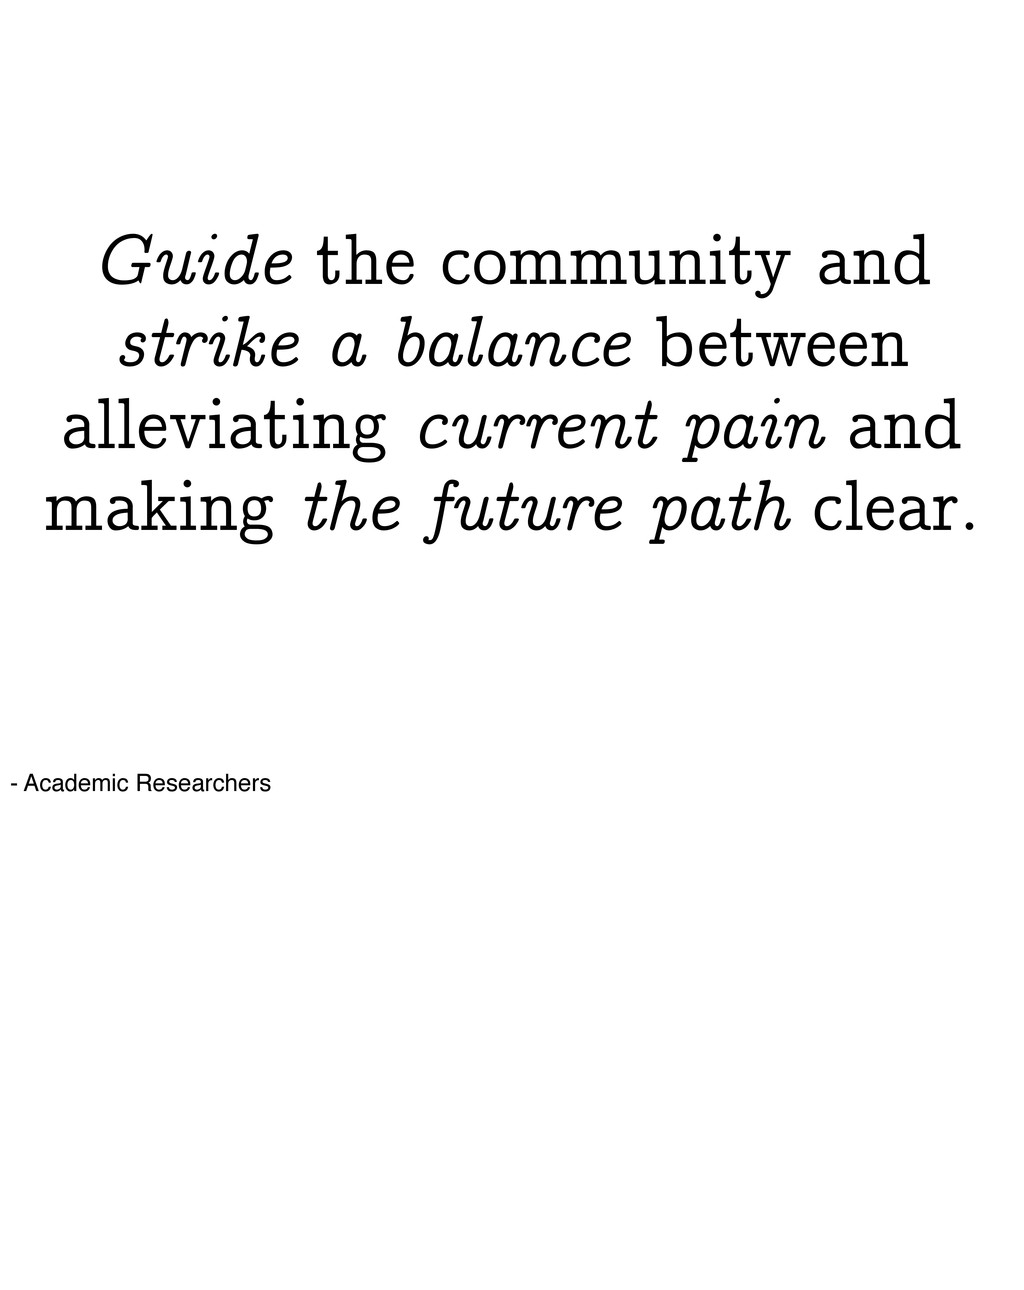 Guide the community and strike a balance betwee...